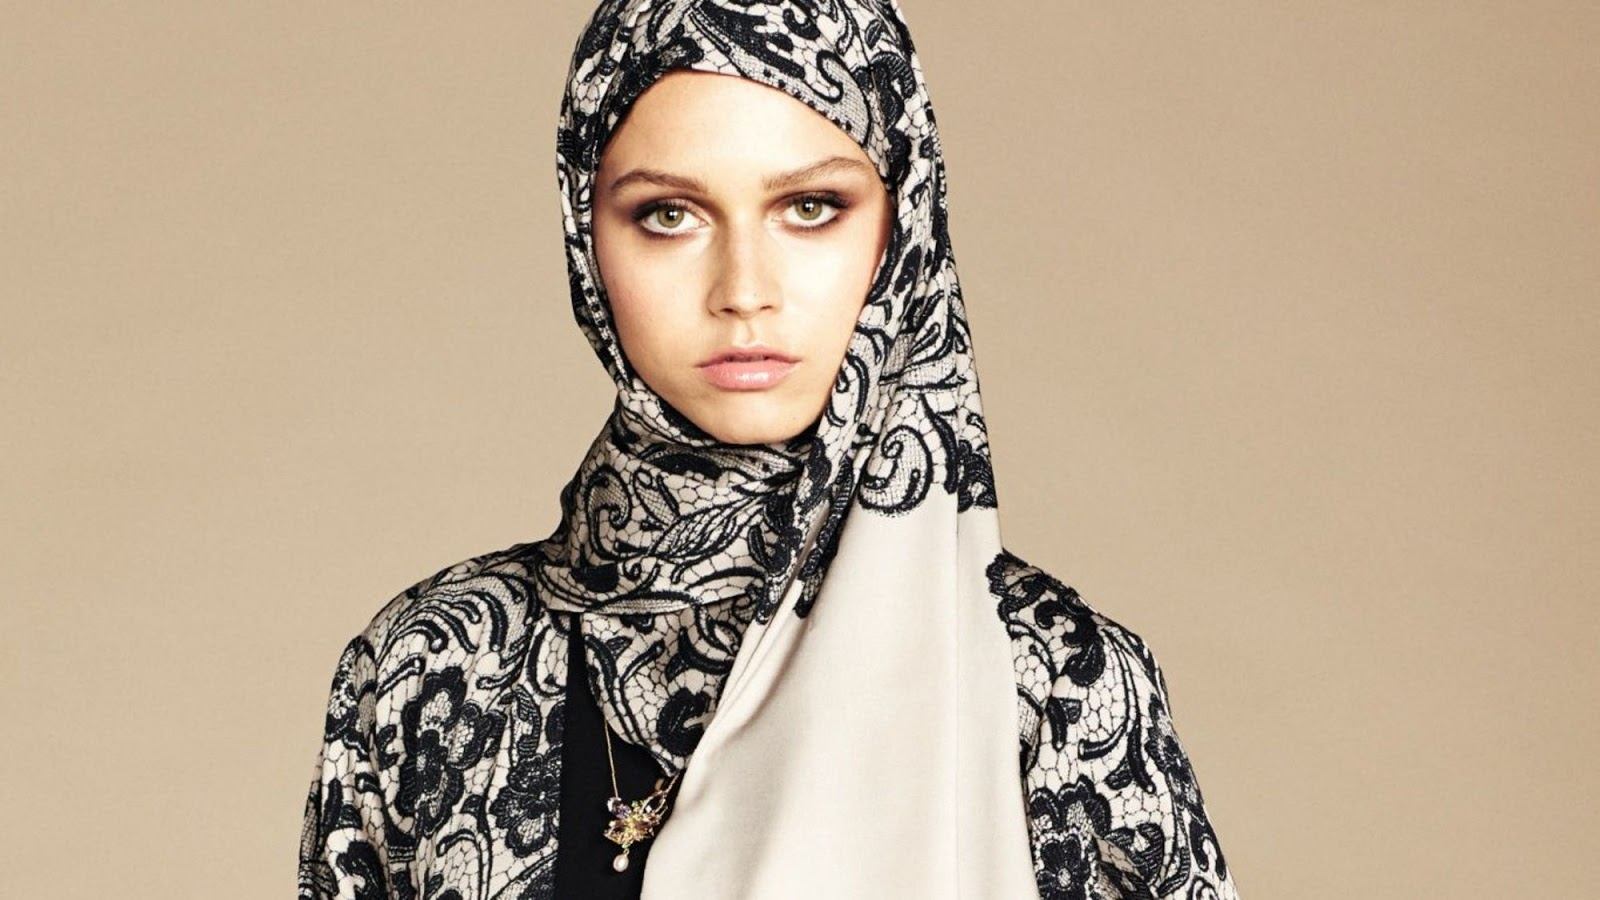 sale single muslim girls 83 responses to most beautiful muslim girls photo gallery muslimblog says: may 24, 2011 at 5:51 pm hot pictures guy, nice work keep it up .